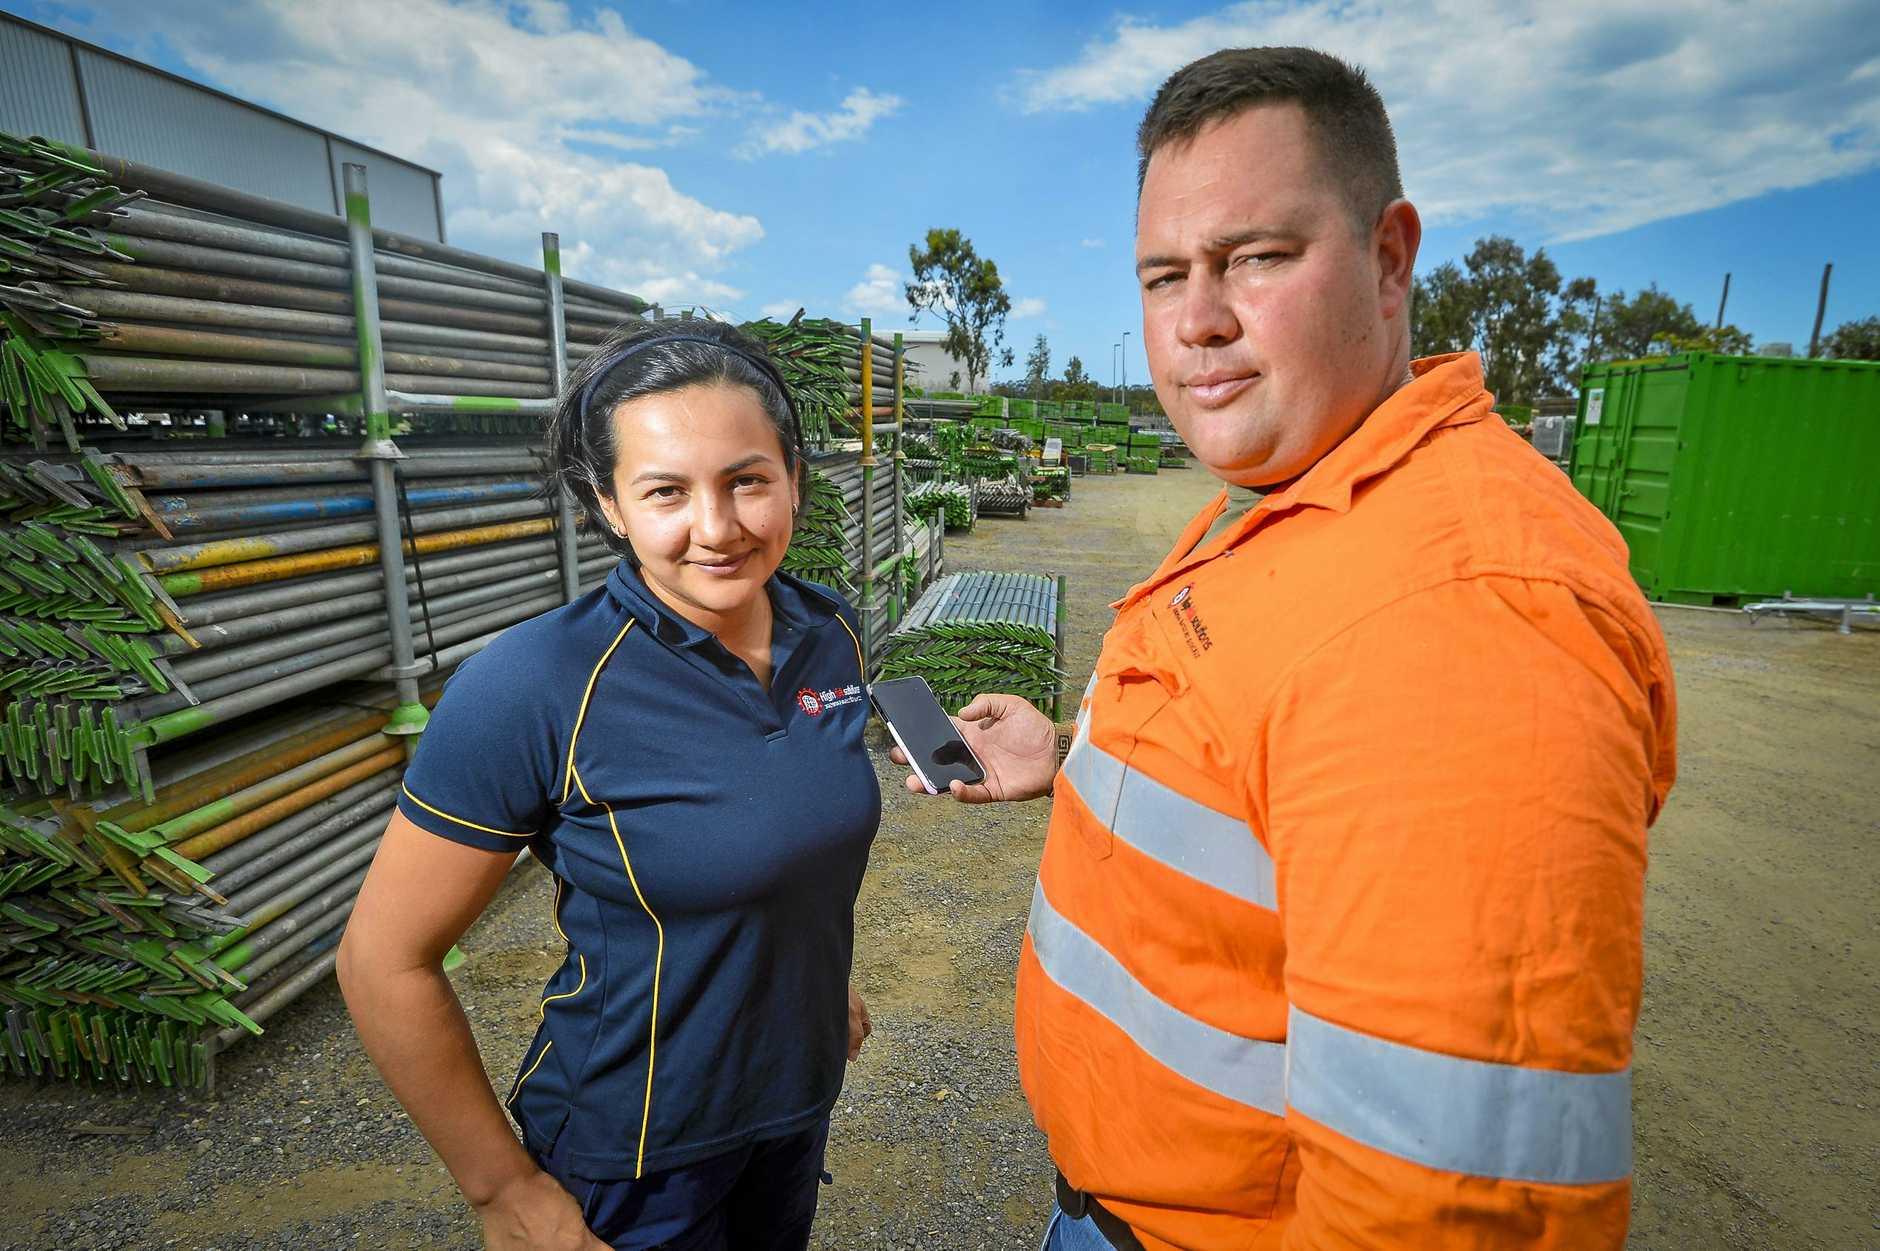 David and Ale Nunn have developed an app to help run their scaffolding business.